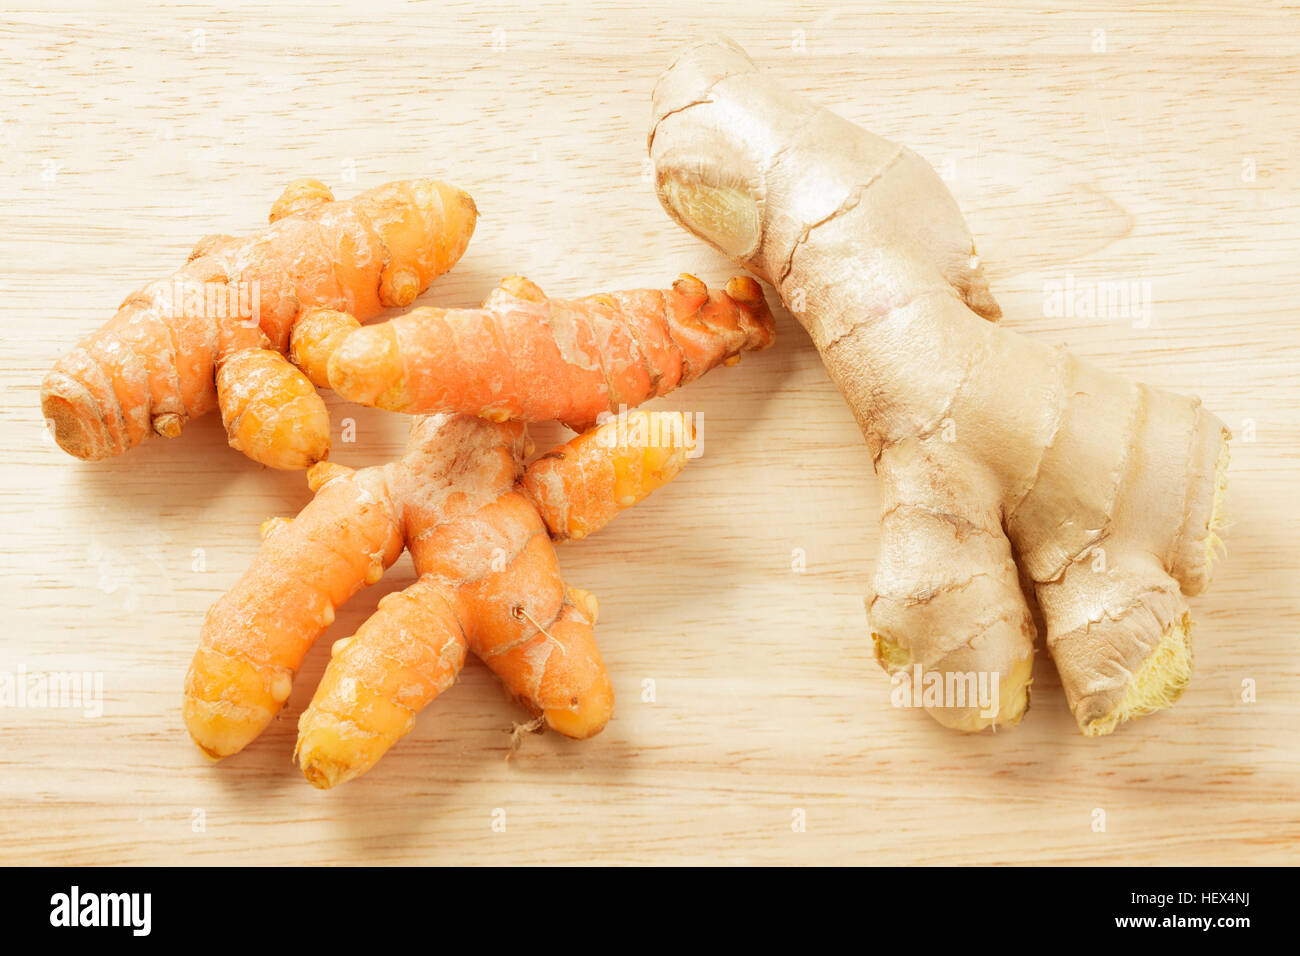 Fresh turmeric root and fresh ginger root - Stock Image